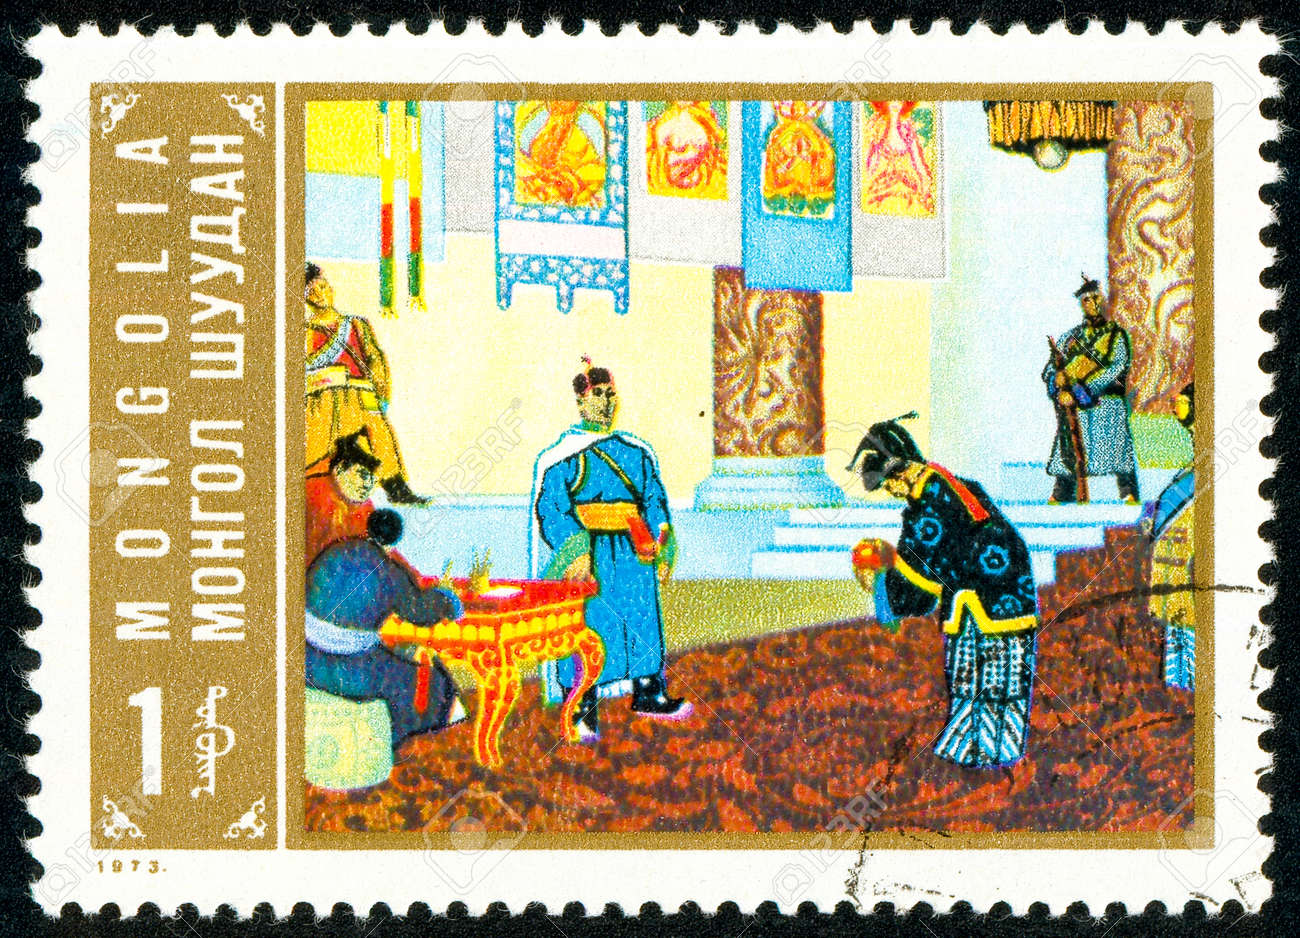 Ukraine - circa 2018: A postage stamp printed in Mongolia show a picture of the artist Suchbaatar. Series: Paintings. Circa 1973. Banque d'images - 94167936